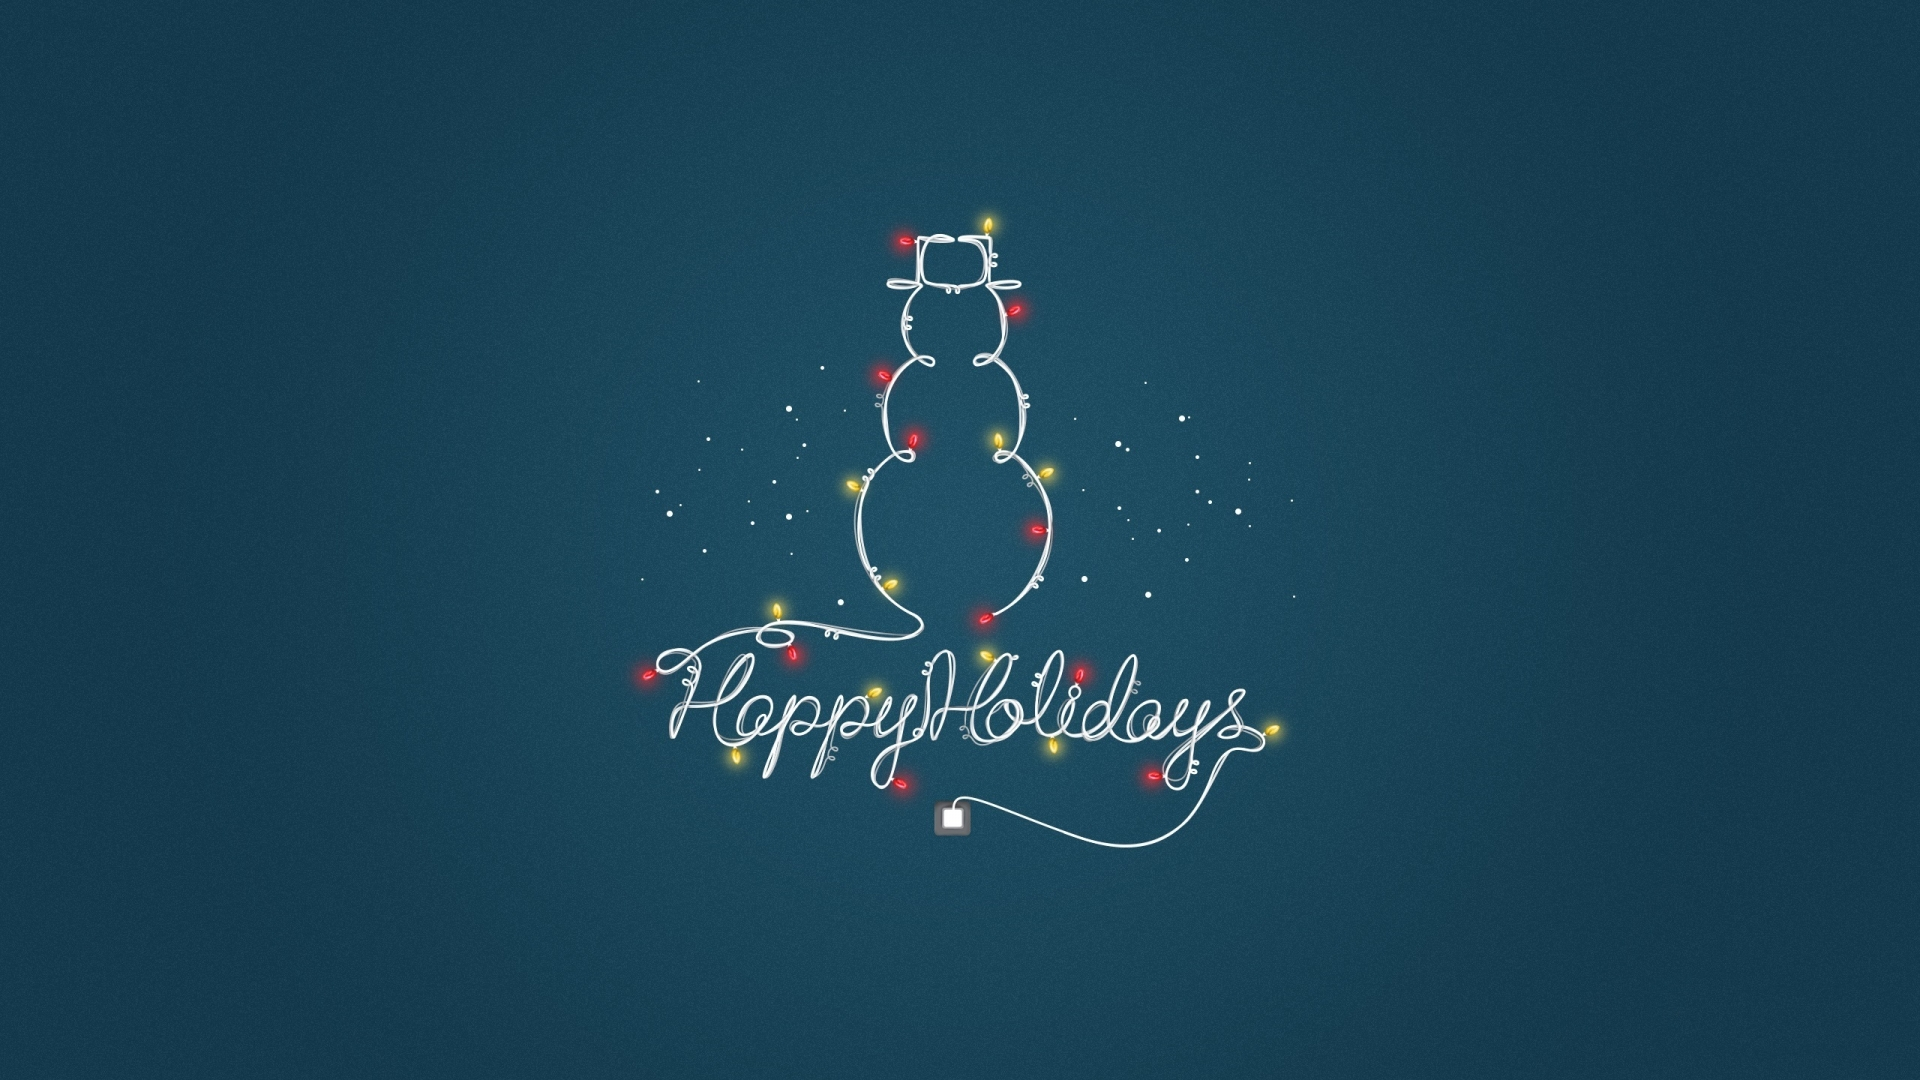 gallery for happy holidays wallpaper